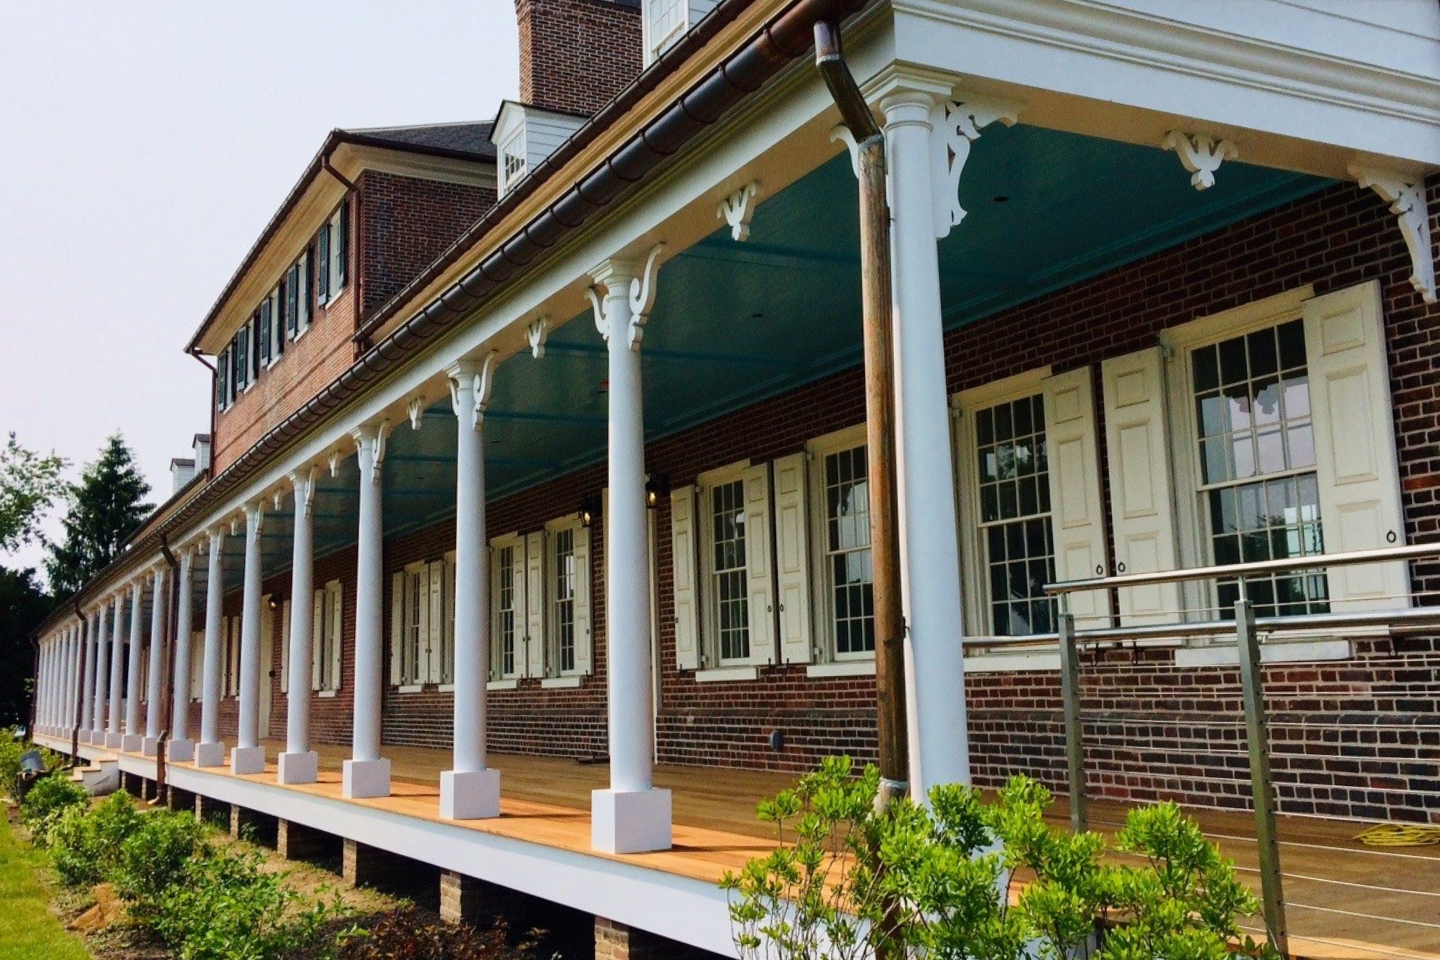 Commercial front porch columns for historic museum